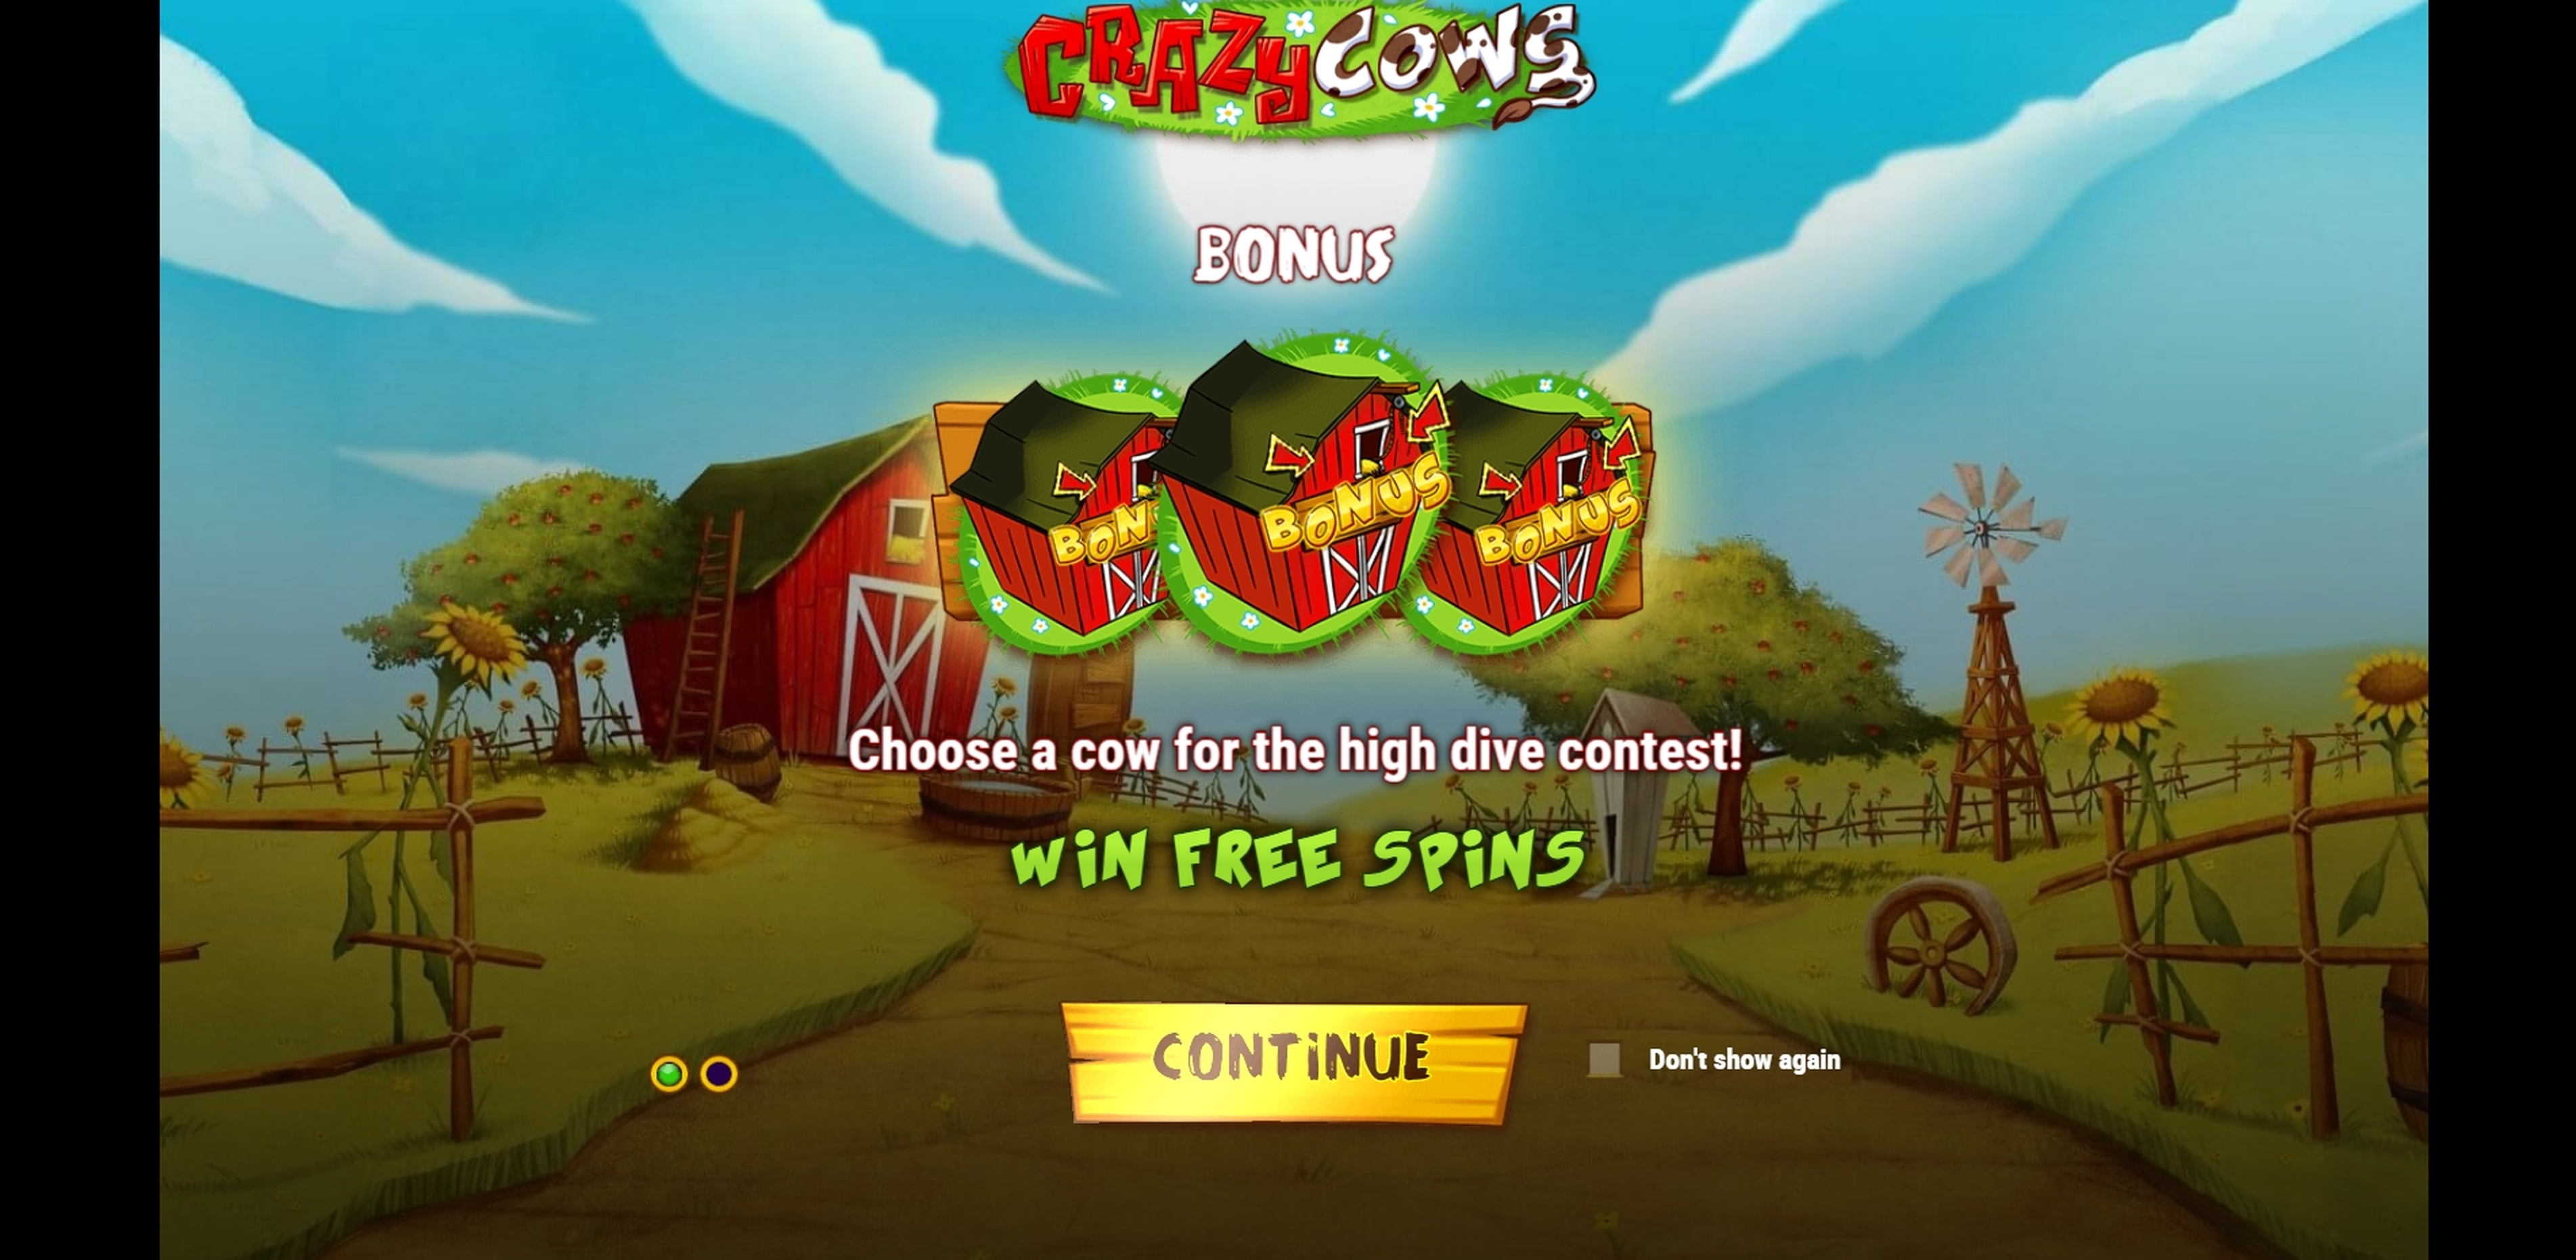 Play Crazy Cows Free Casino Slot Game by Playn GO